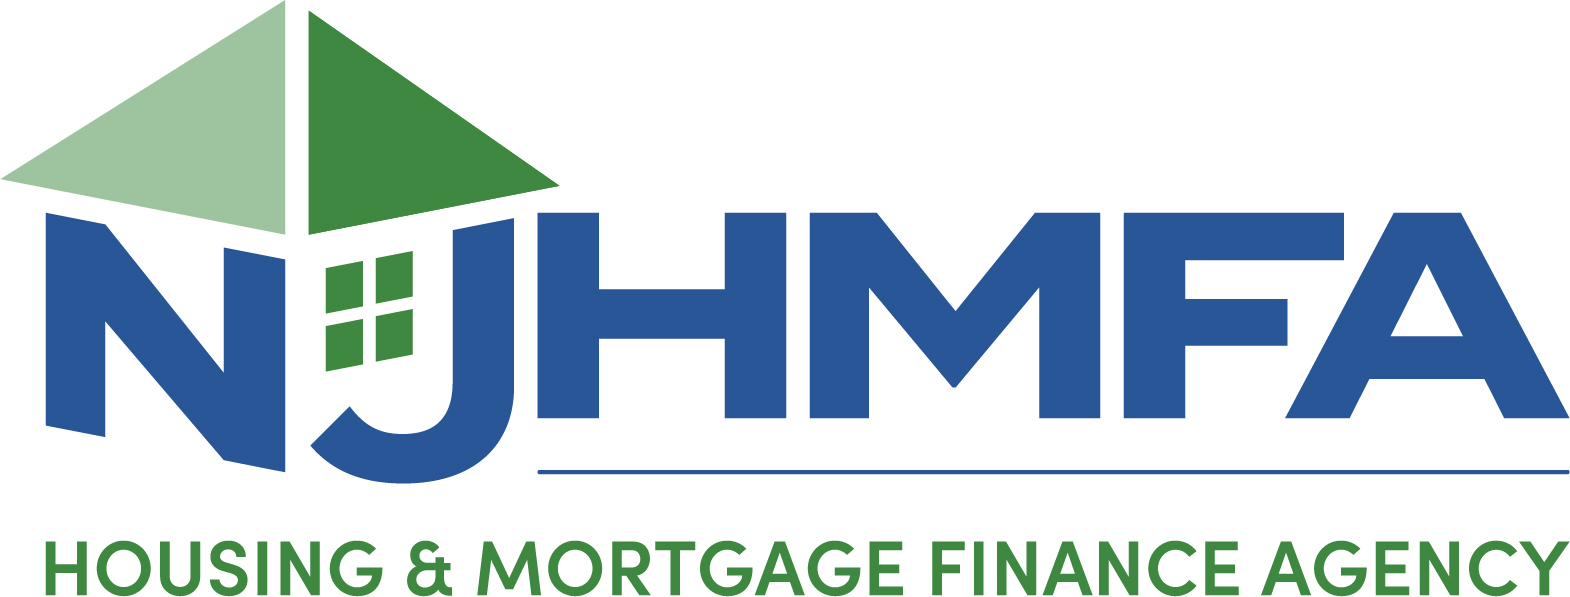 NJHMFA Announces 2019 Round of Federal 9% Low Income Housing Tax Credits to Help Fund 1,200 Affordable Apartments